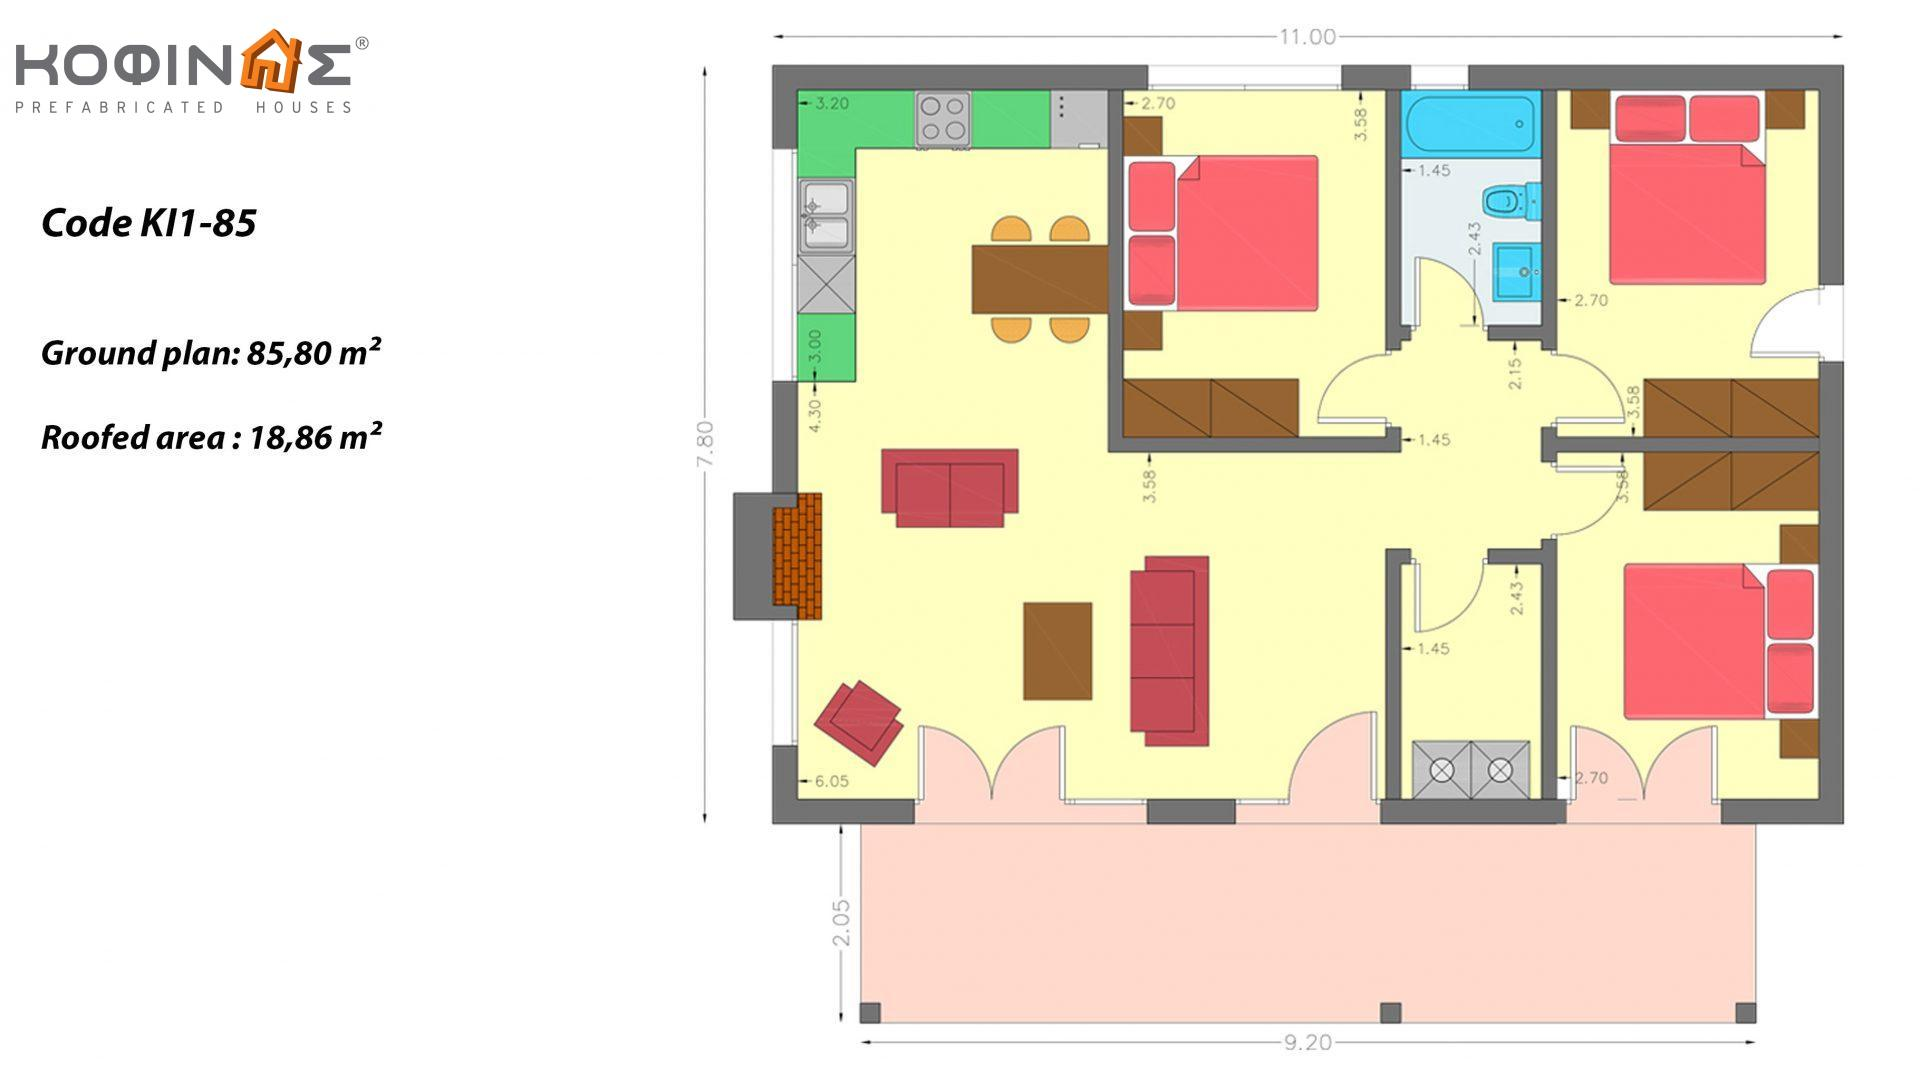 1-story house KI1-85, total surface of 85,80 m², roofed areas 18,86 m²